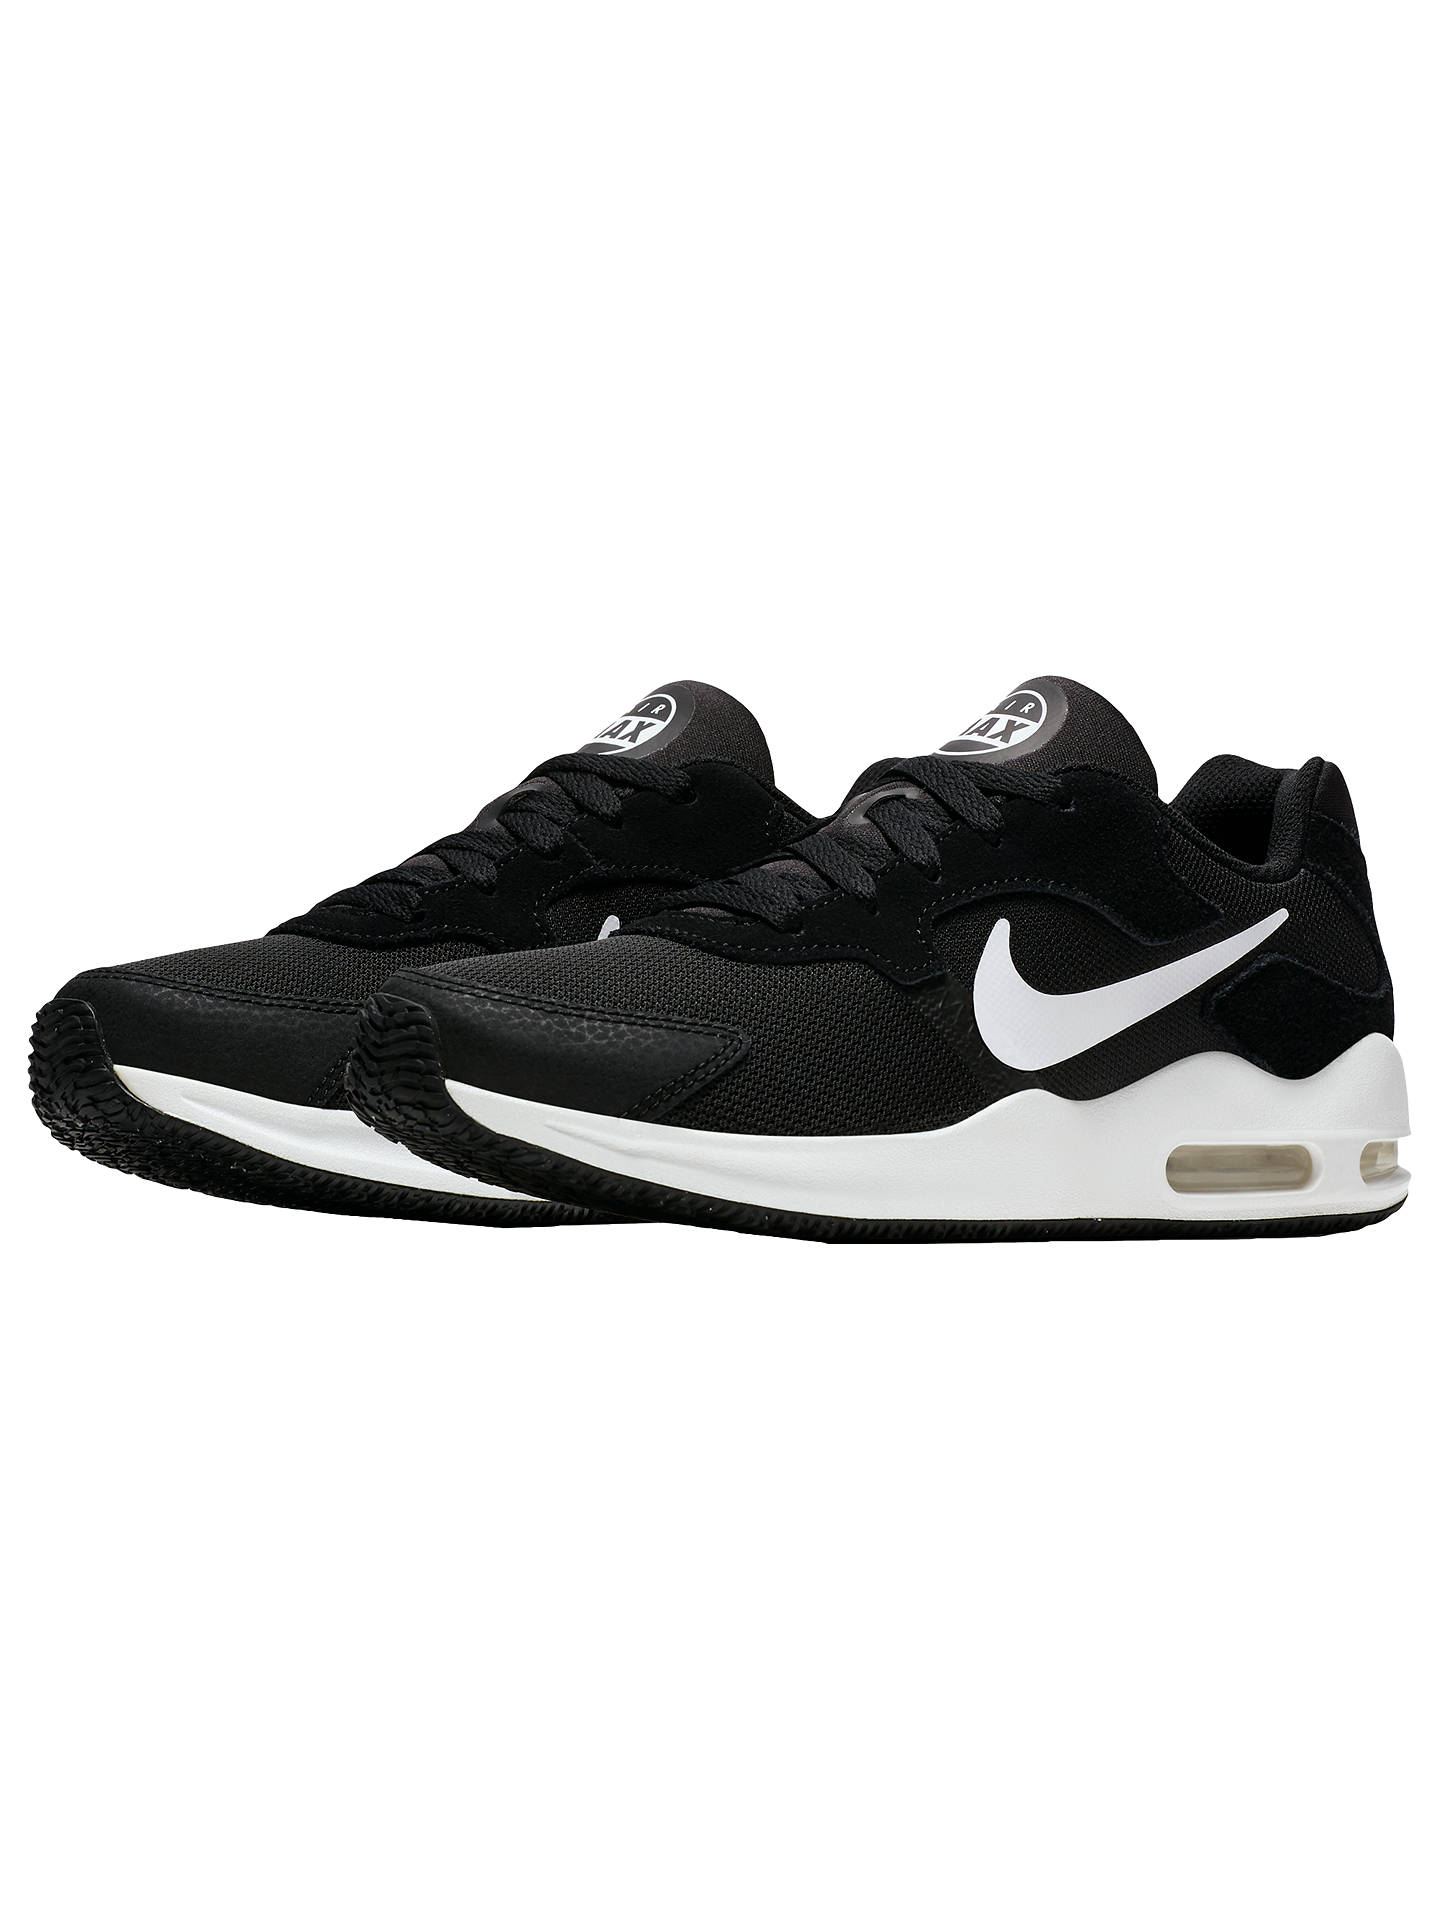 first look no sale tax uk cheap sale Nike Air Max Guile Women's Trainers at John Lewis & Partners